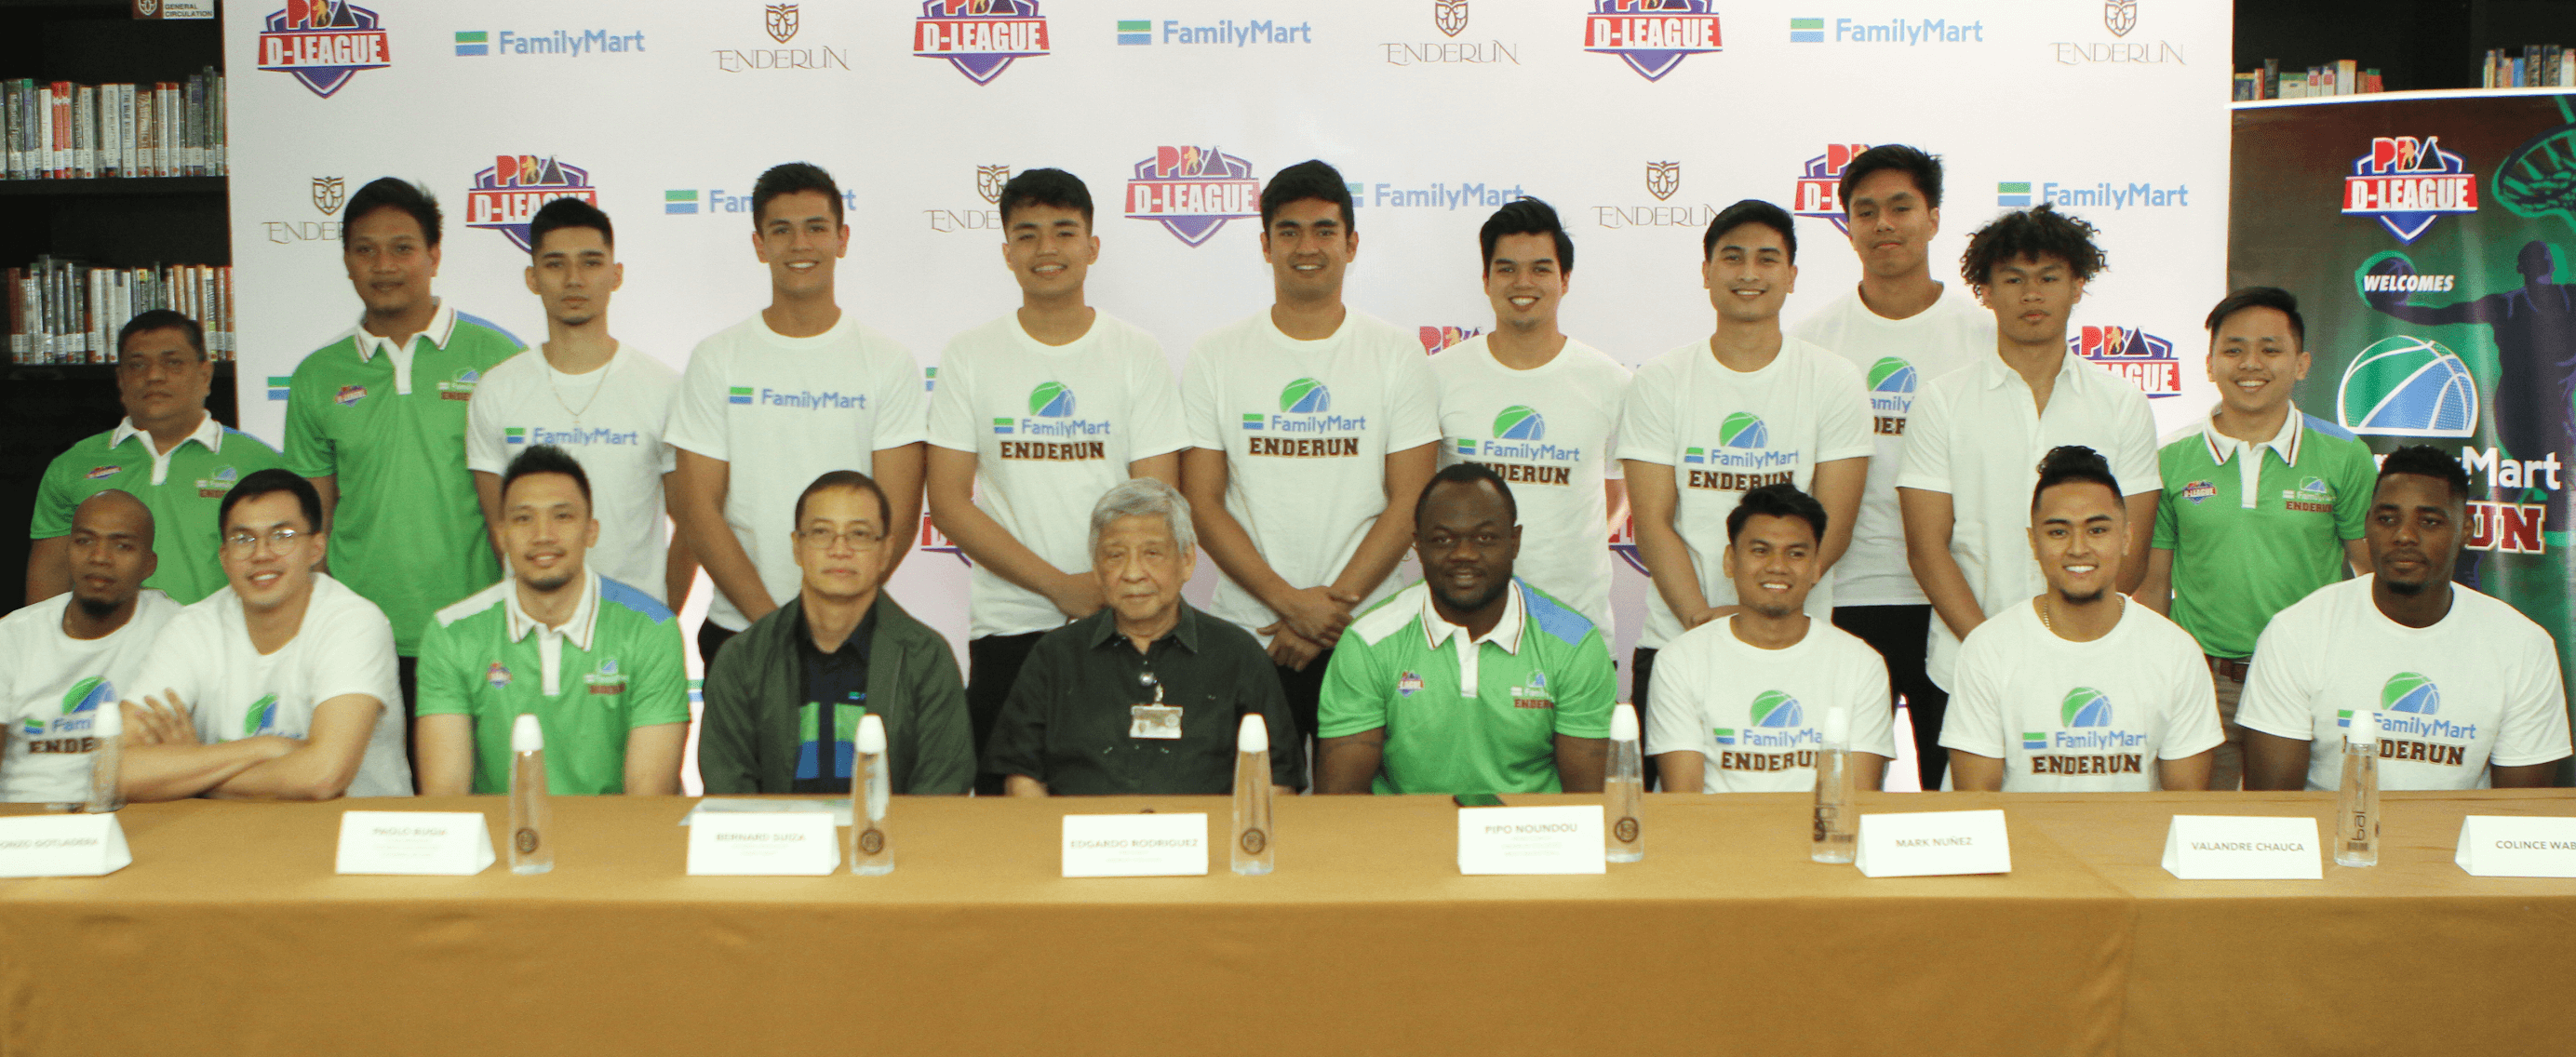 FamilyMart-Enderun joins PBA D-League